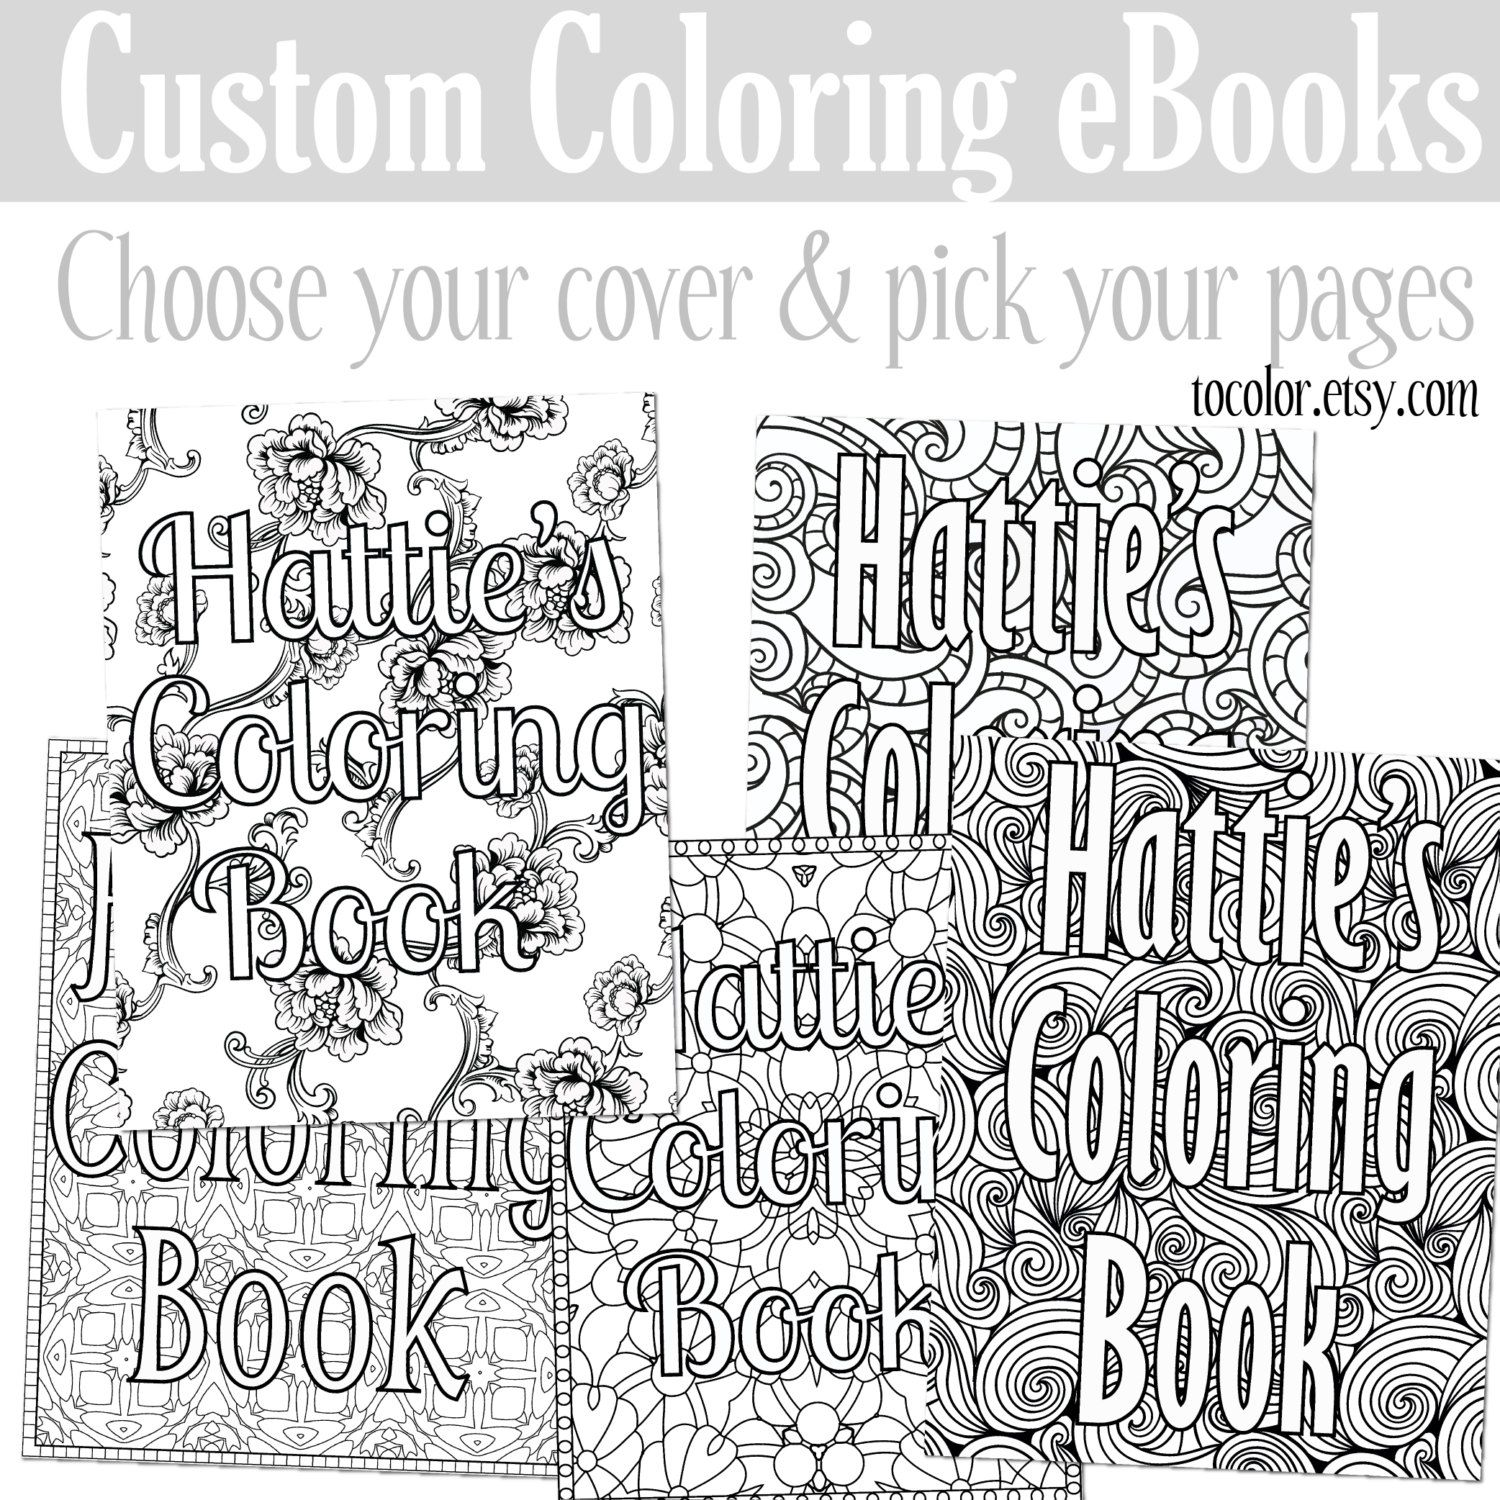 Custom Coloring Ebook Coloring Pages Create Your Own Coloring